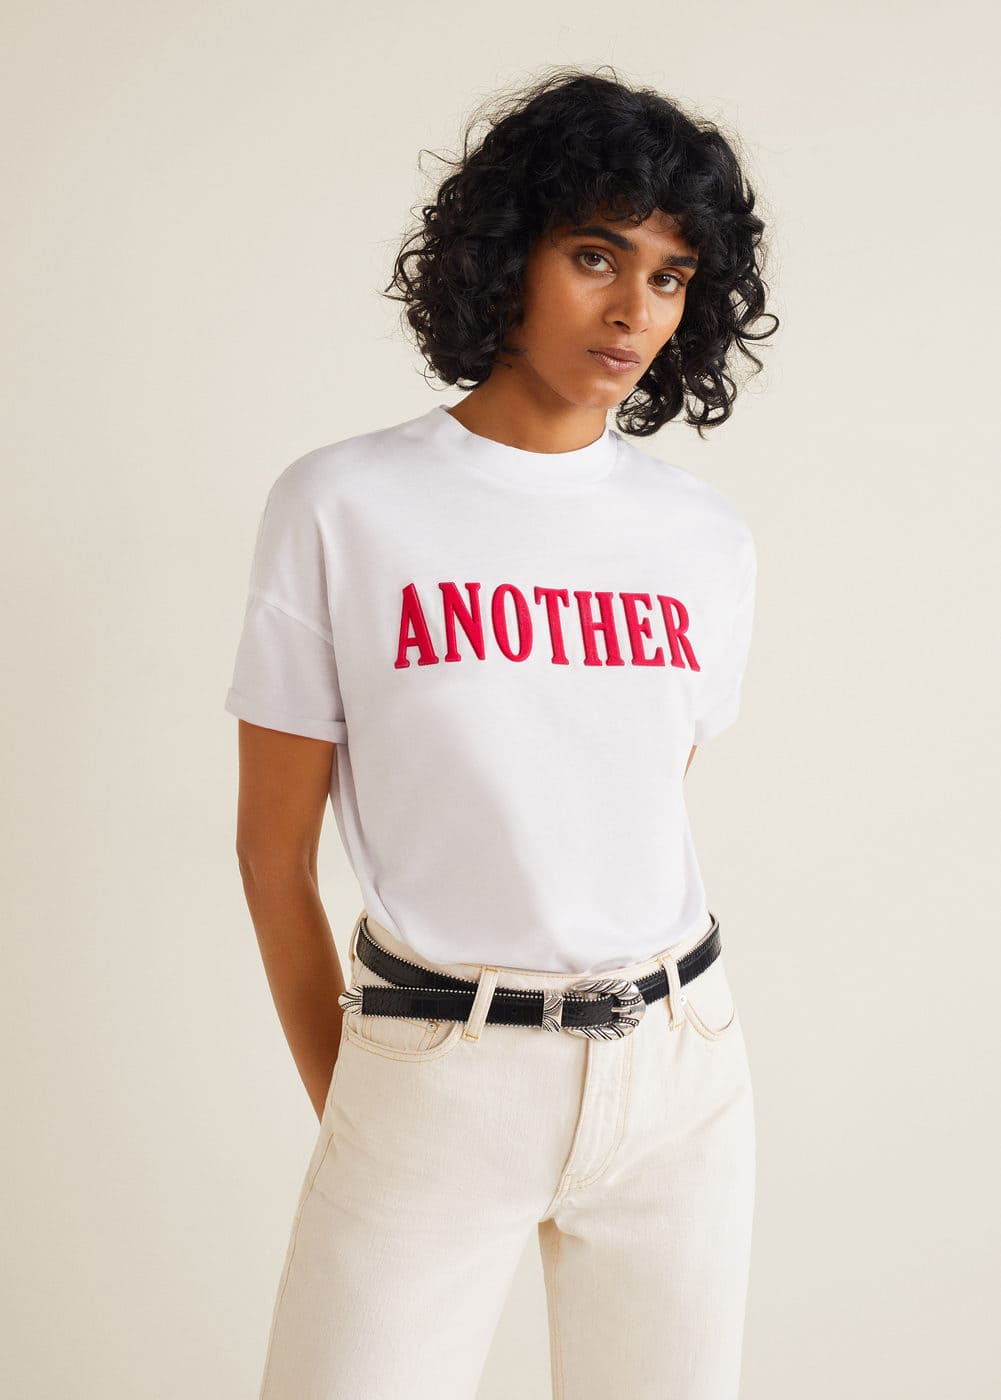 m-another:camiseta mensaje terciopelo